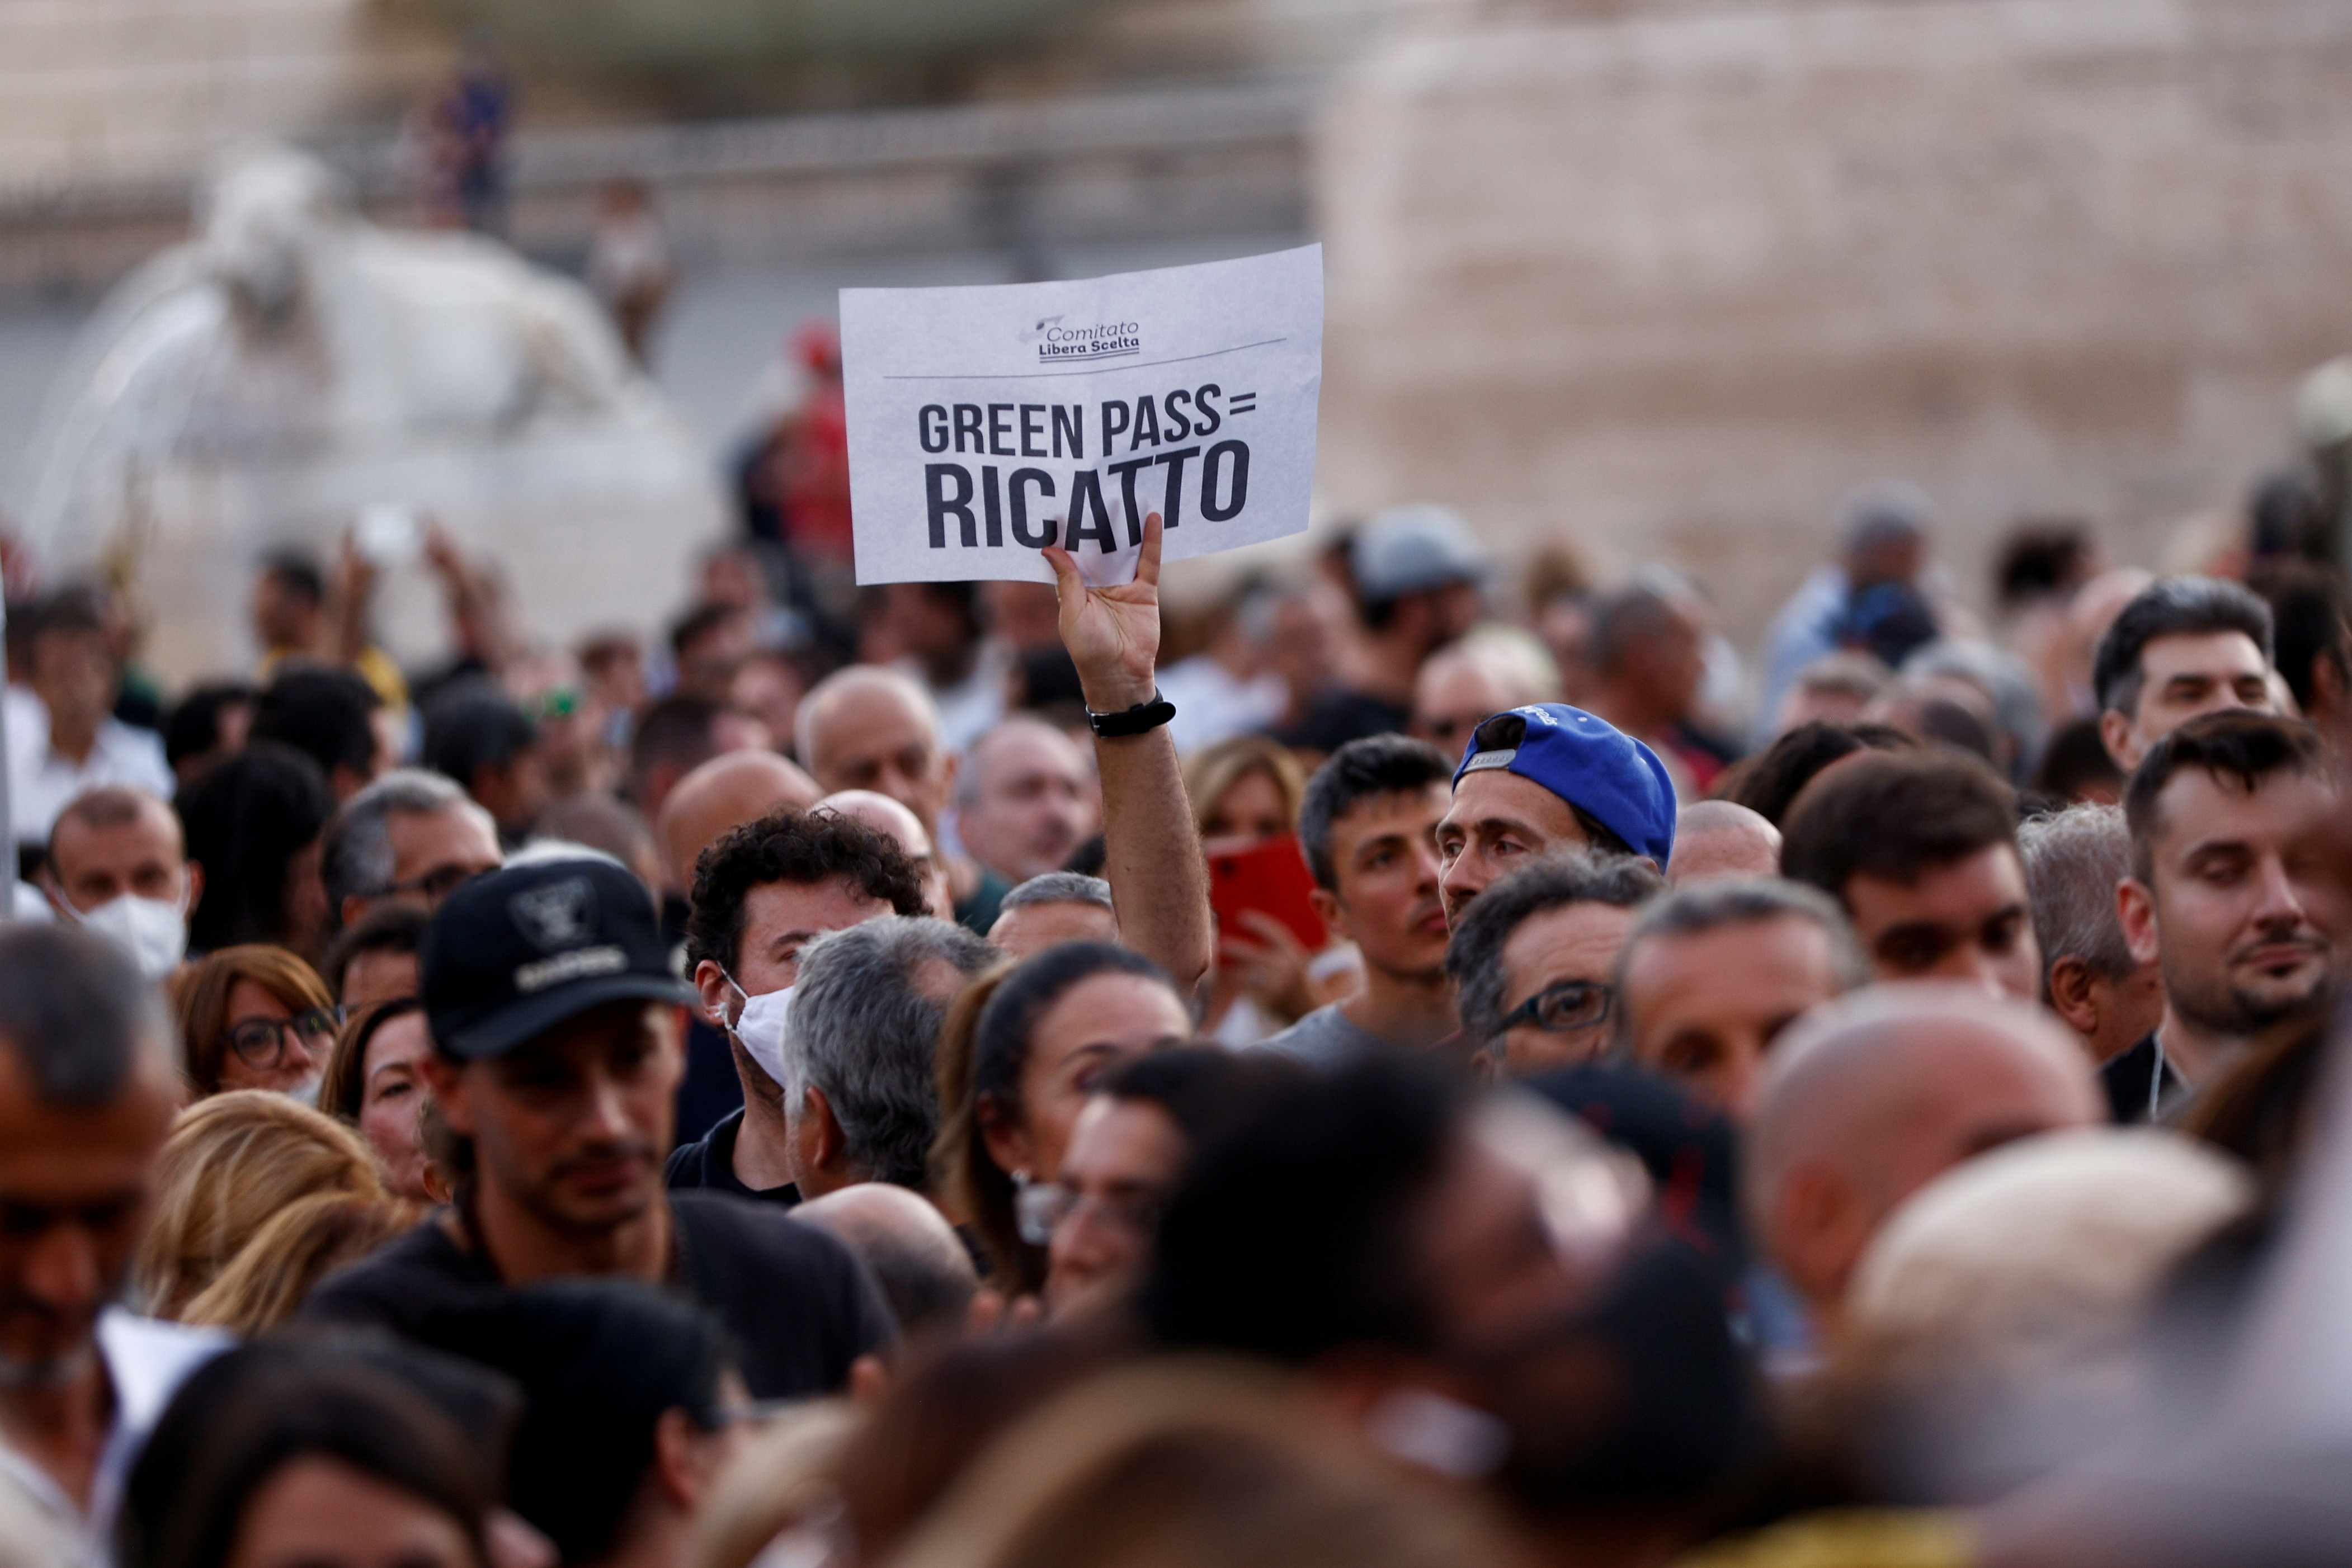 Protesters demonstrate against the Green Pass plan (health pass) in Rome, Italy, July 28, 2021. Banner reads: